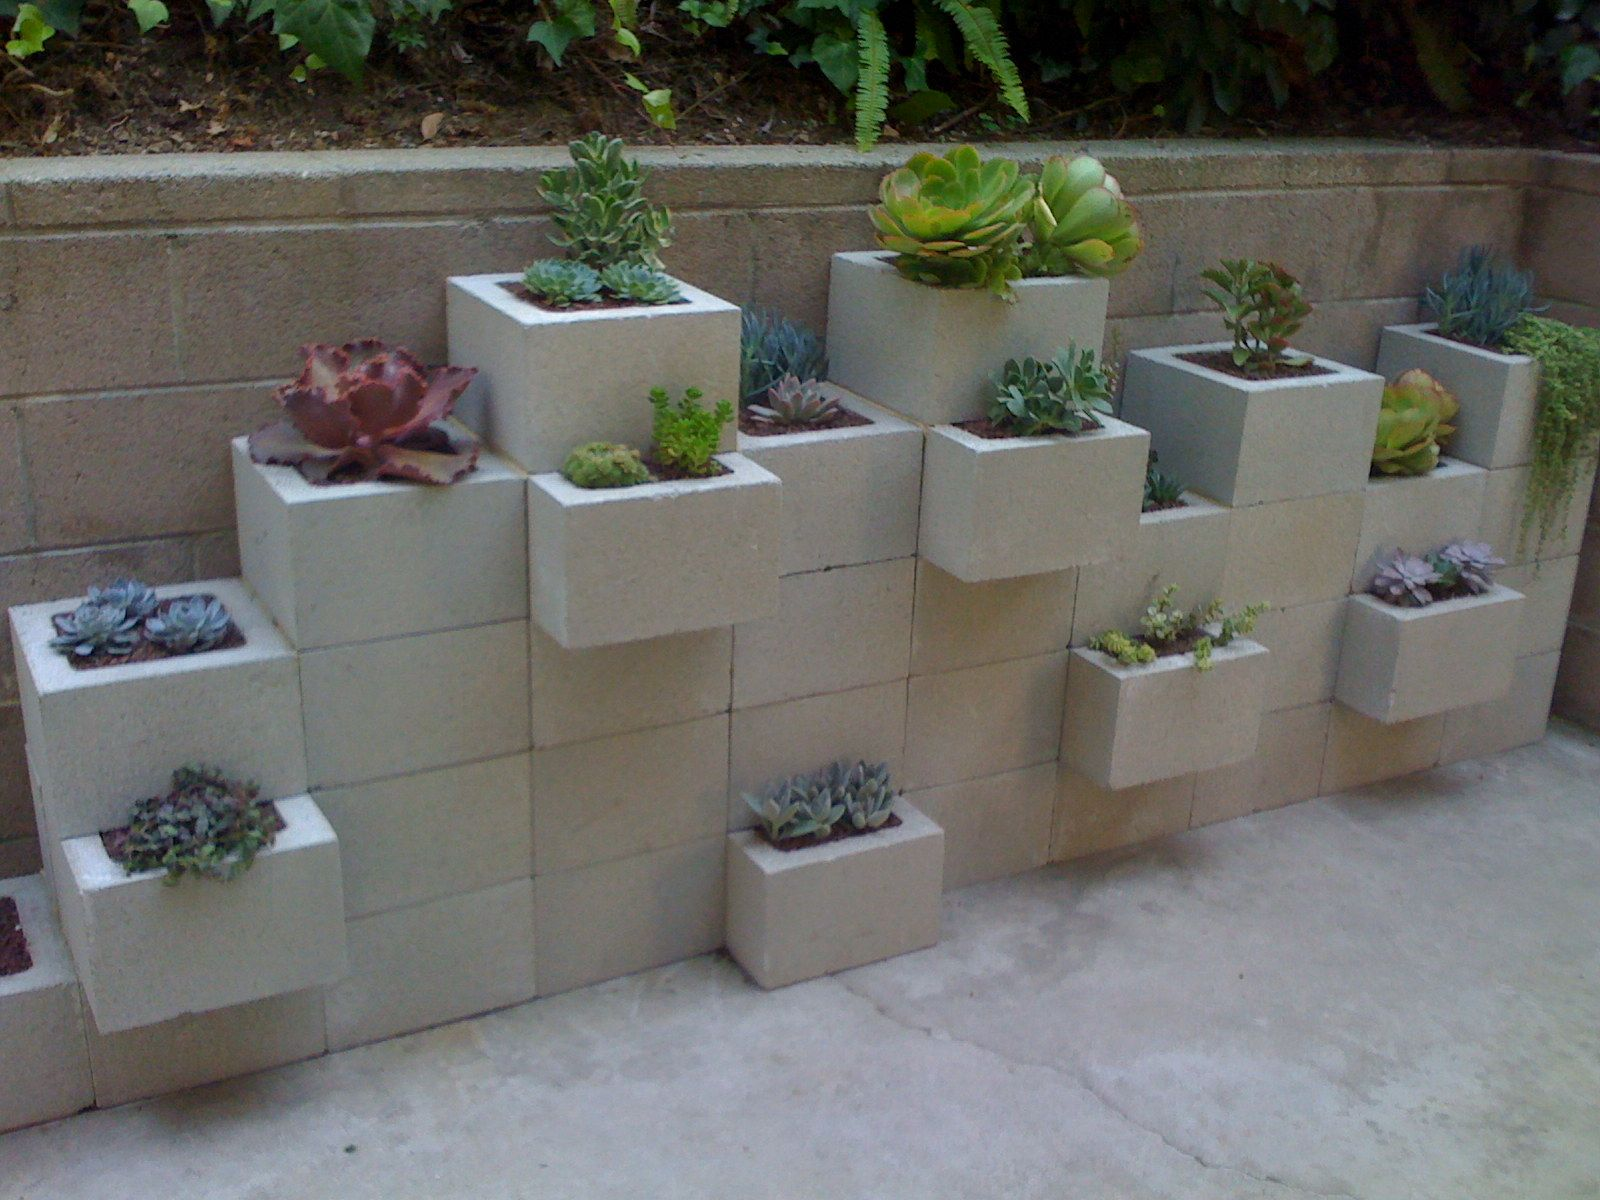 Using cinder blocks to make a planter for succulents or other